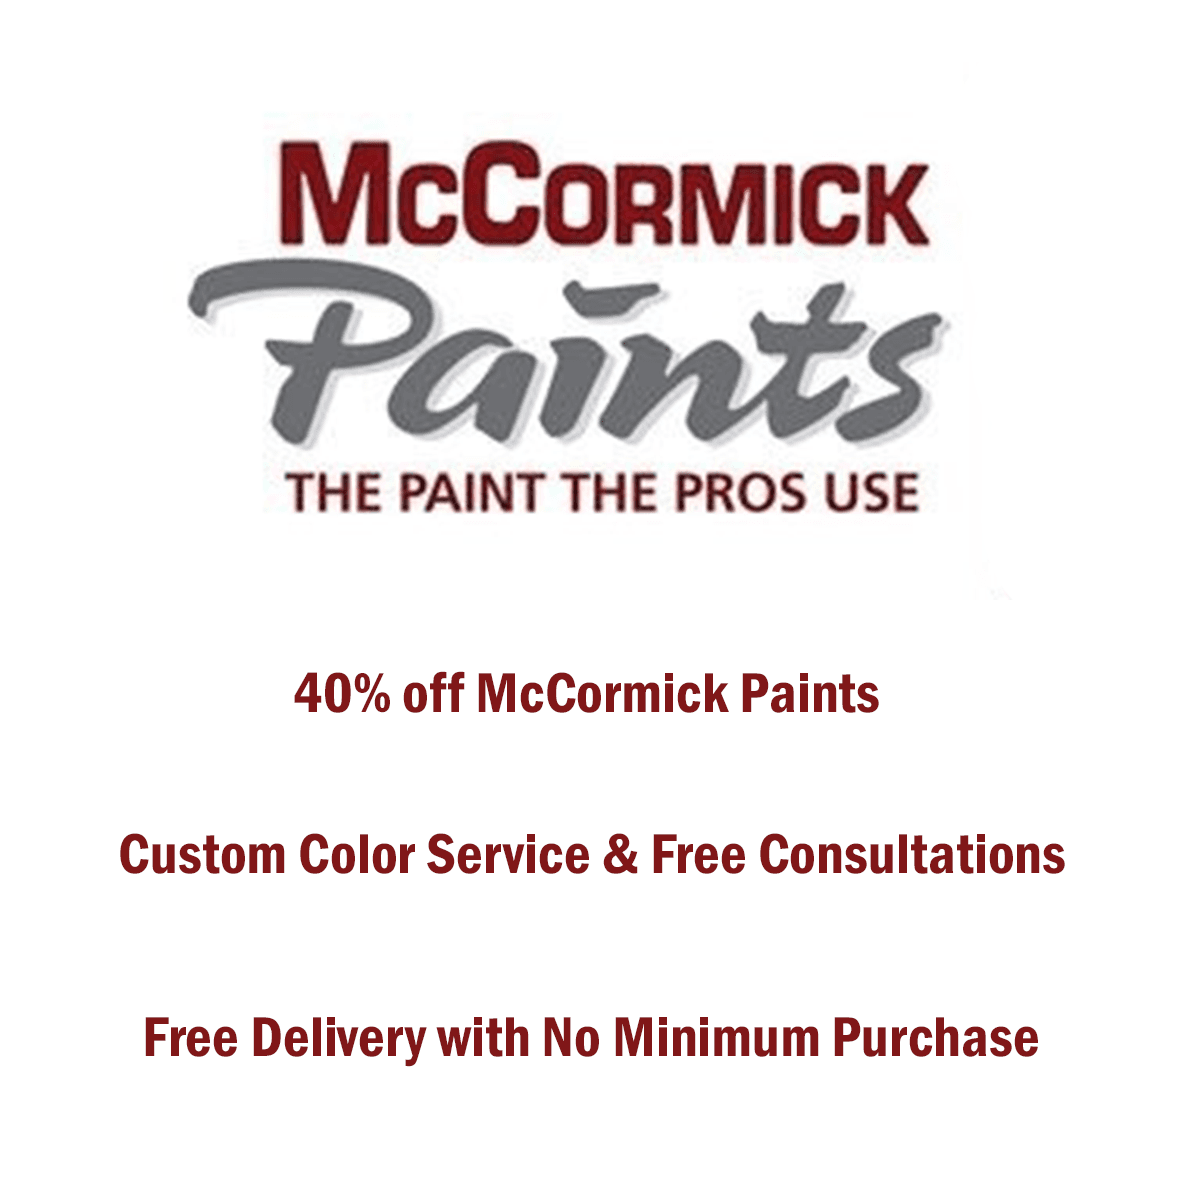 McCormick Paints website